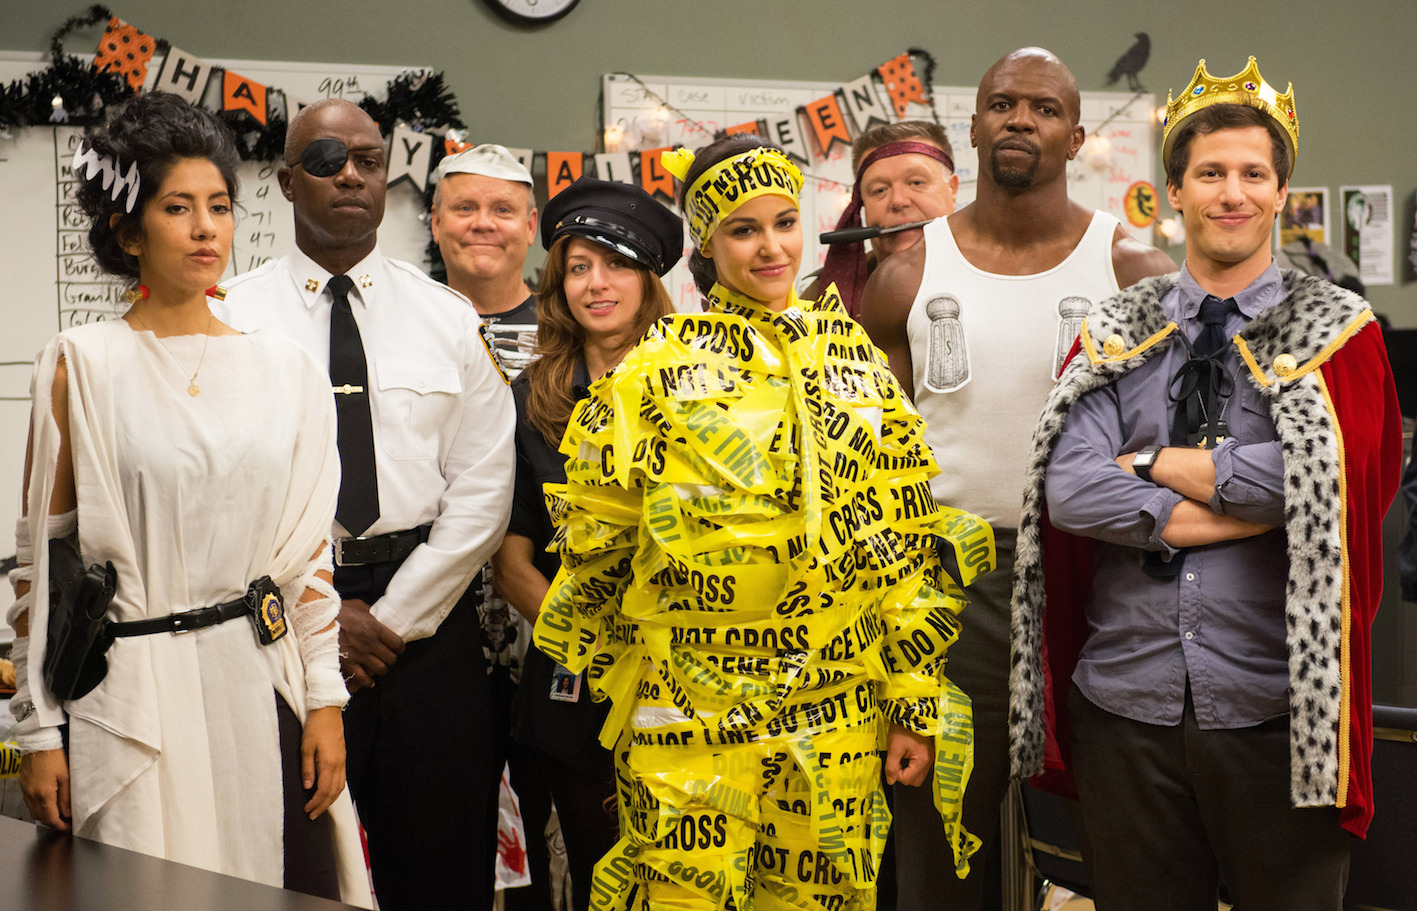 Why 'Brooklyn 99's Latino & LGBT Fans Are Devastated by Sitcom's Cancellation